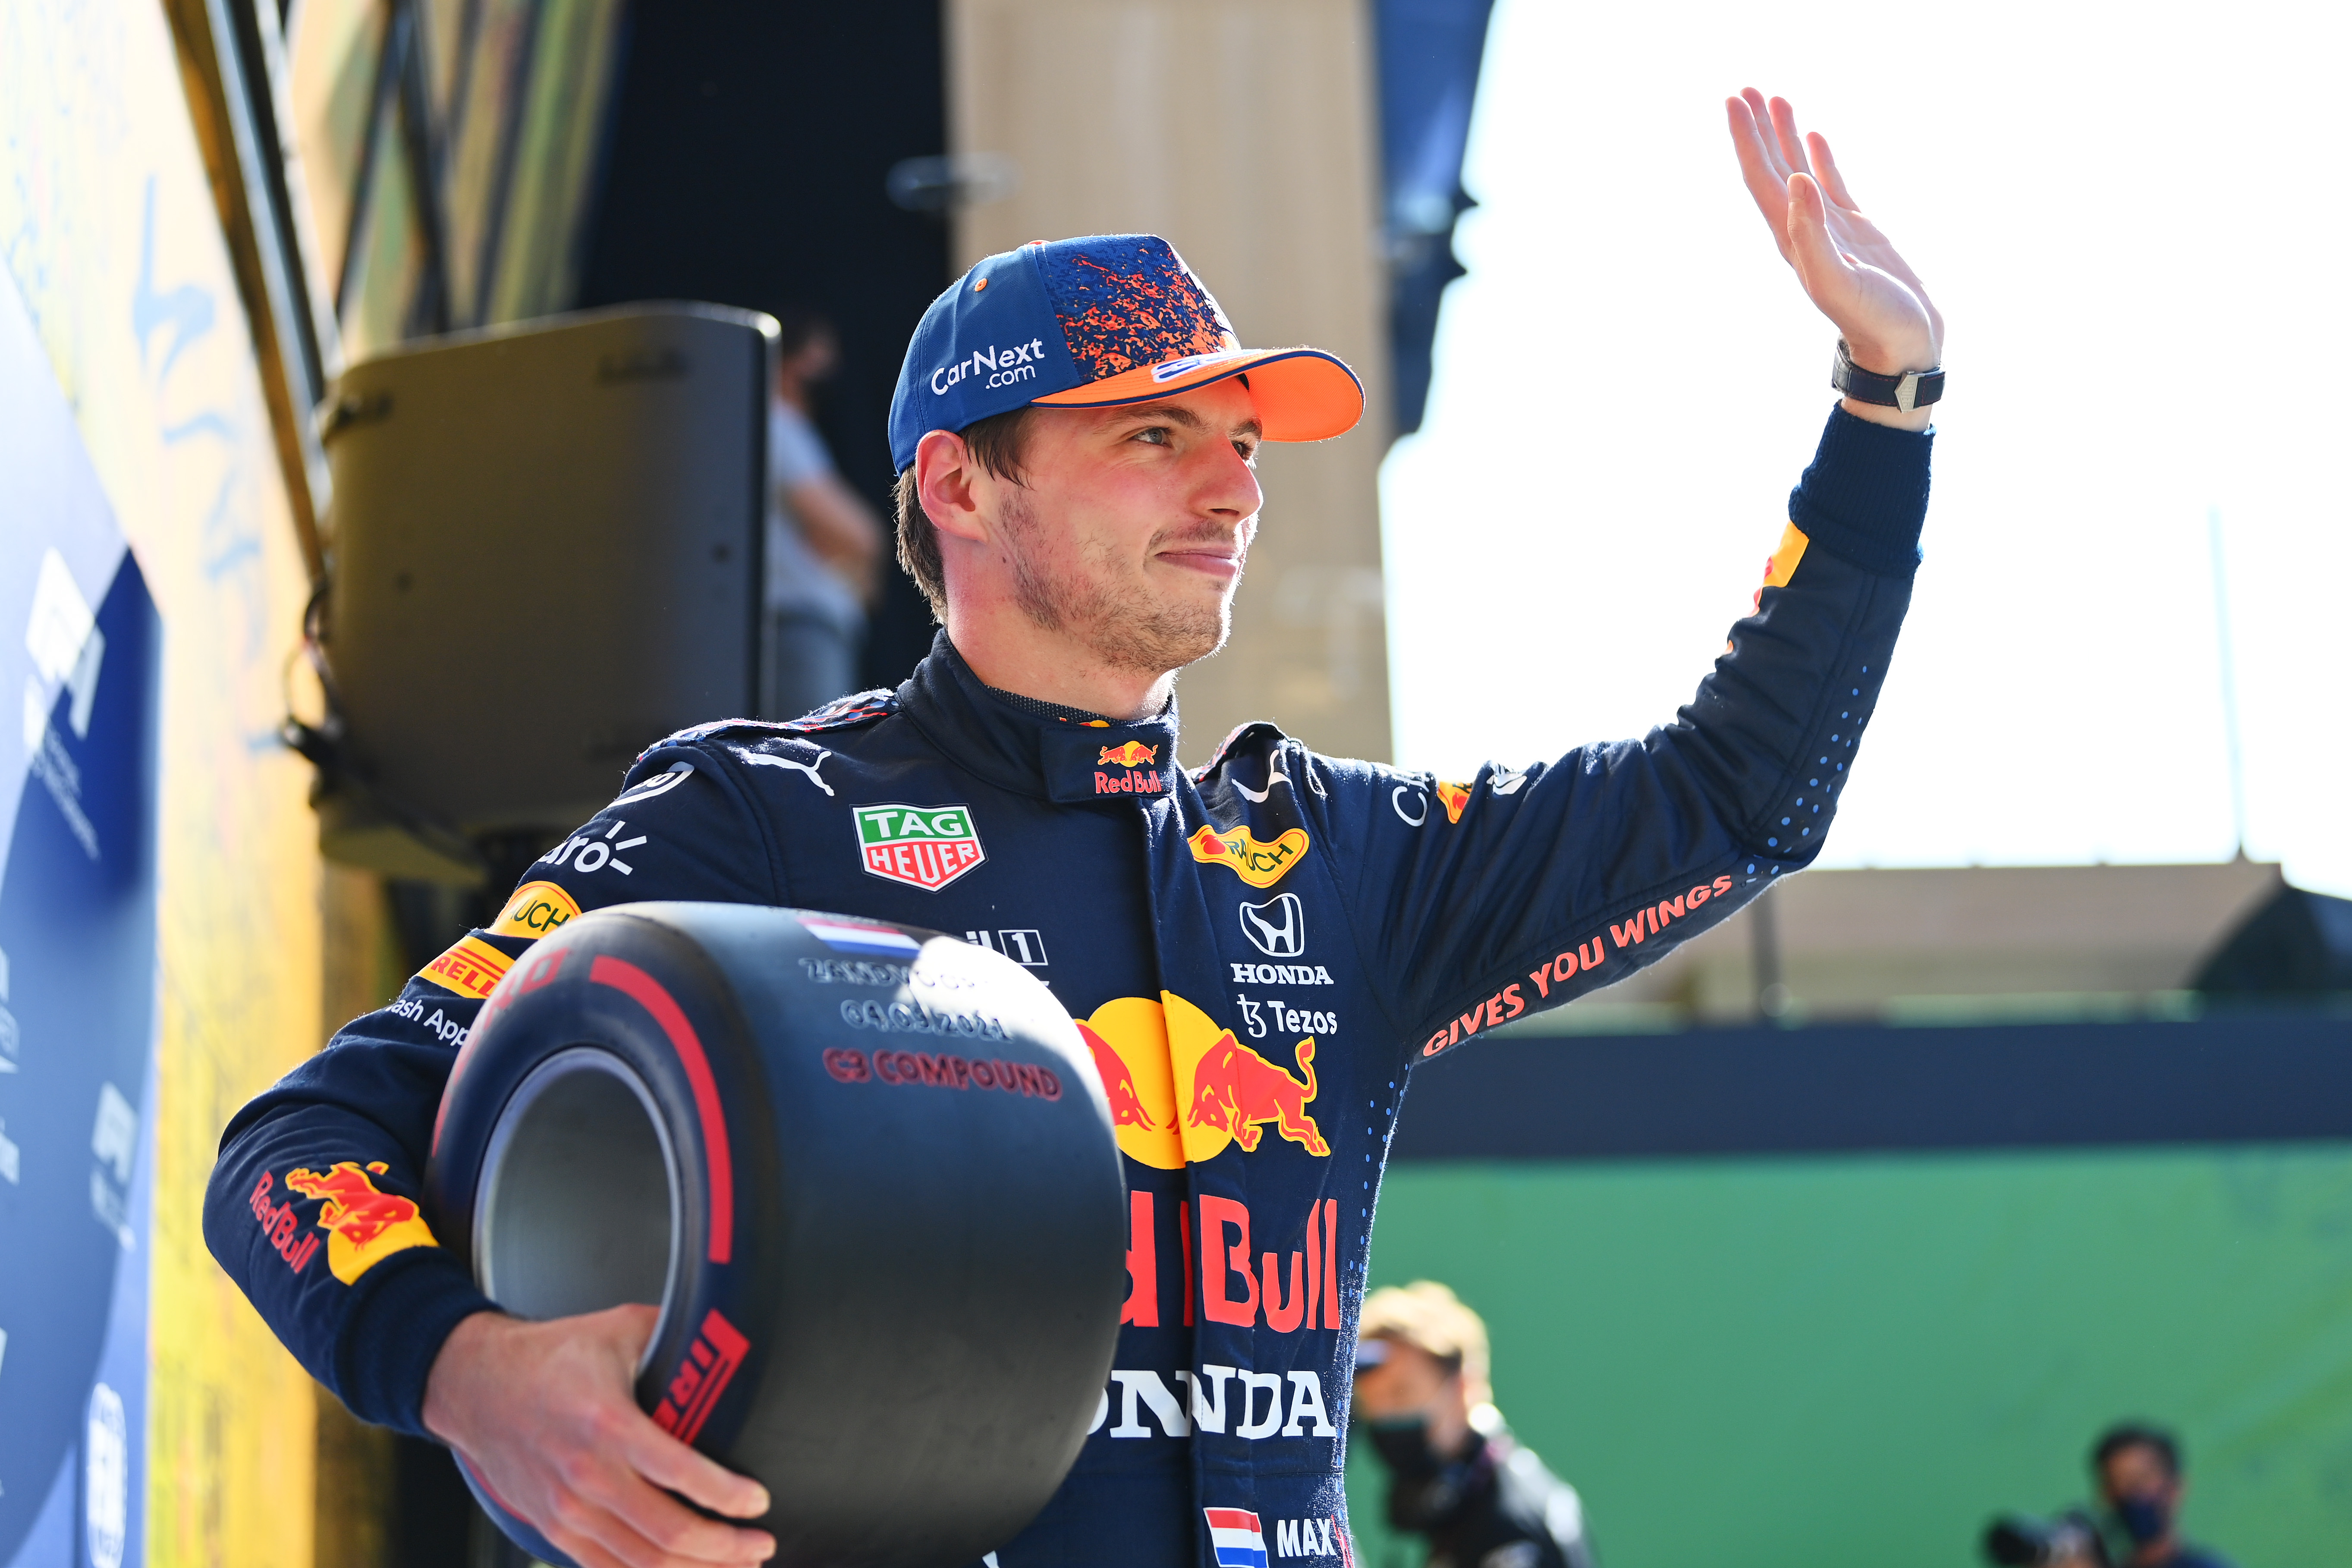 F1 Grand Prix of The Netherlands - Qualifying